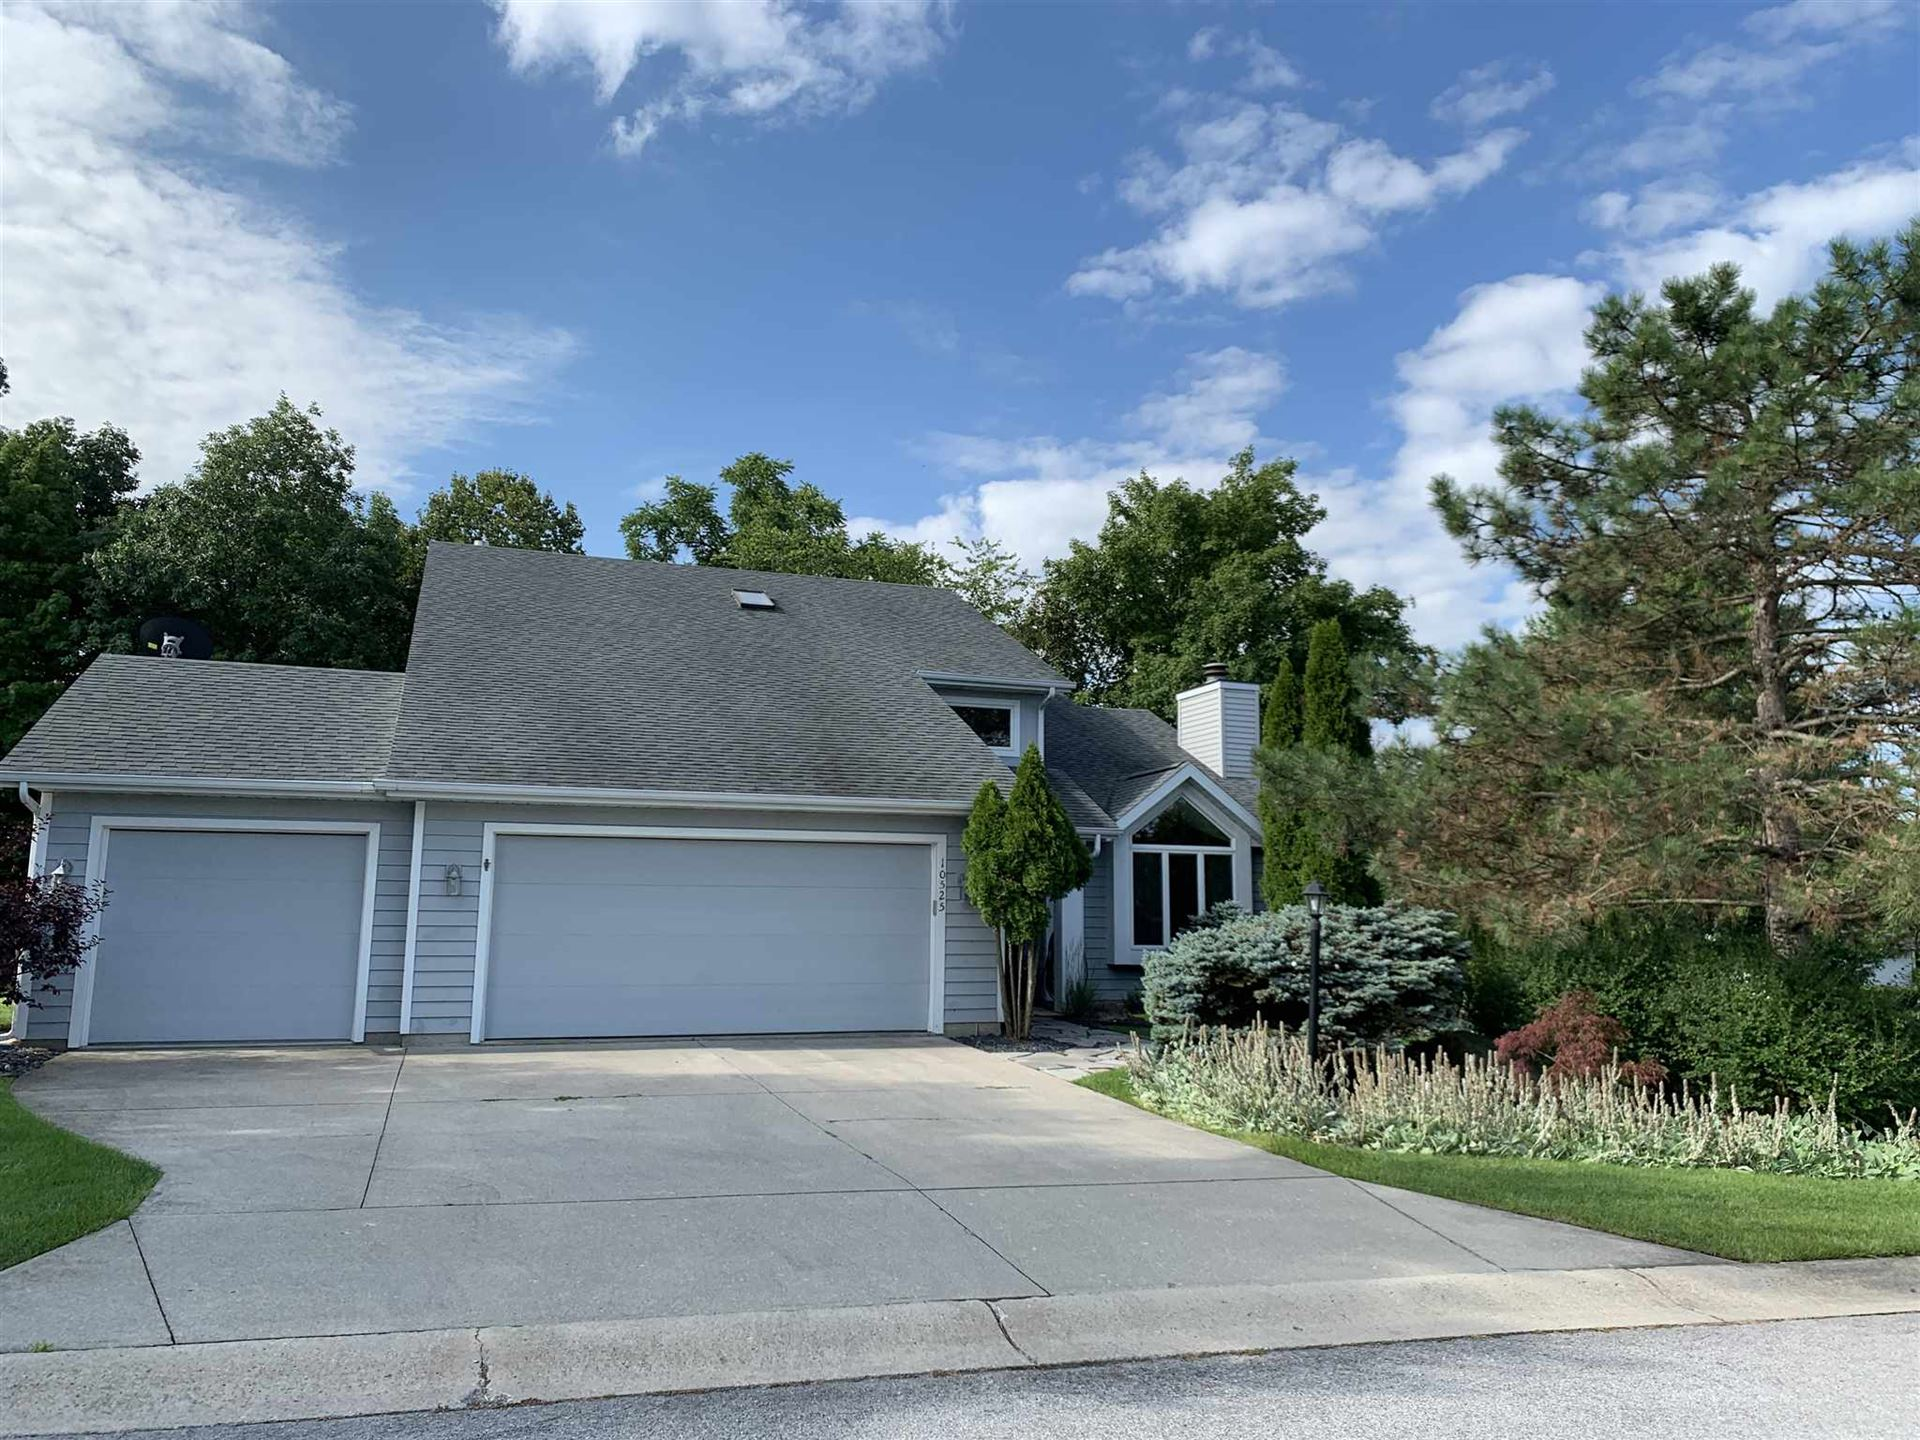 10525 Foxtrot Court, Fort Wayne, IN 46814 - #: 202030961